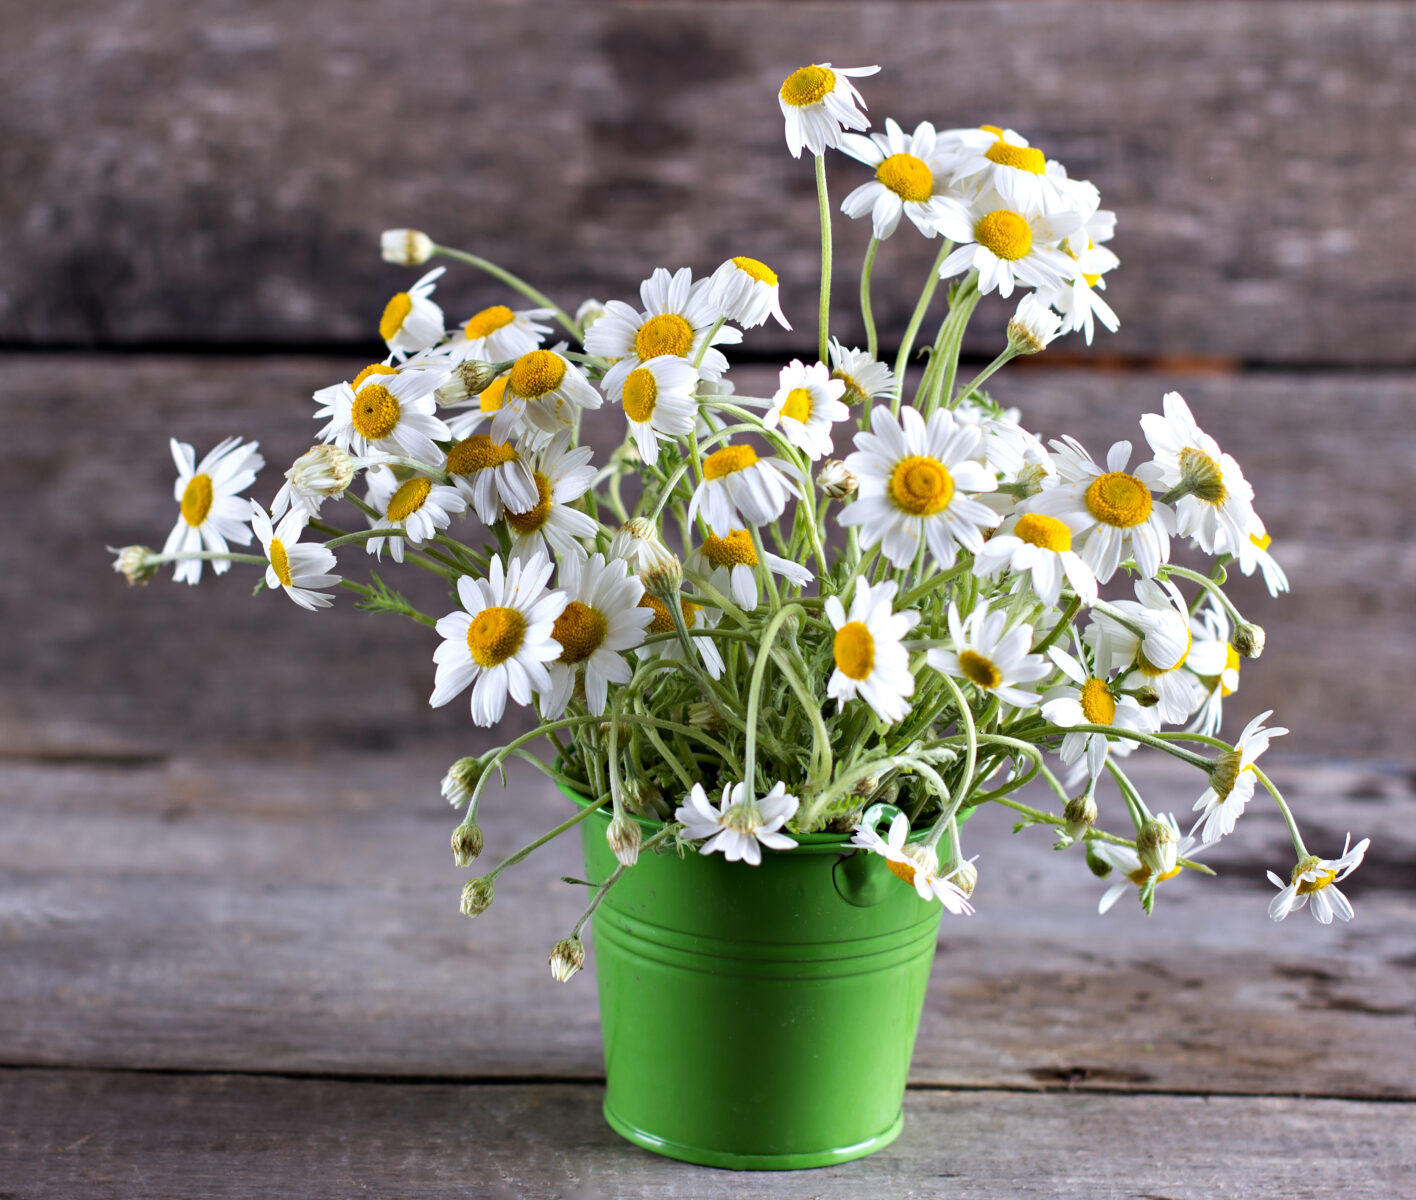 The Flowry - Sustainable flowers - flower shops - shop local - local flowers - slow flowers - farm to vase